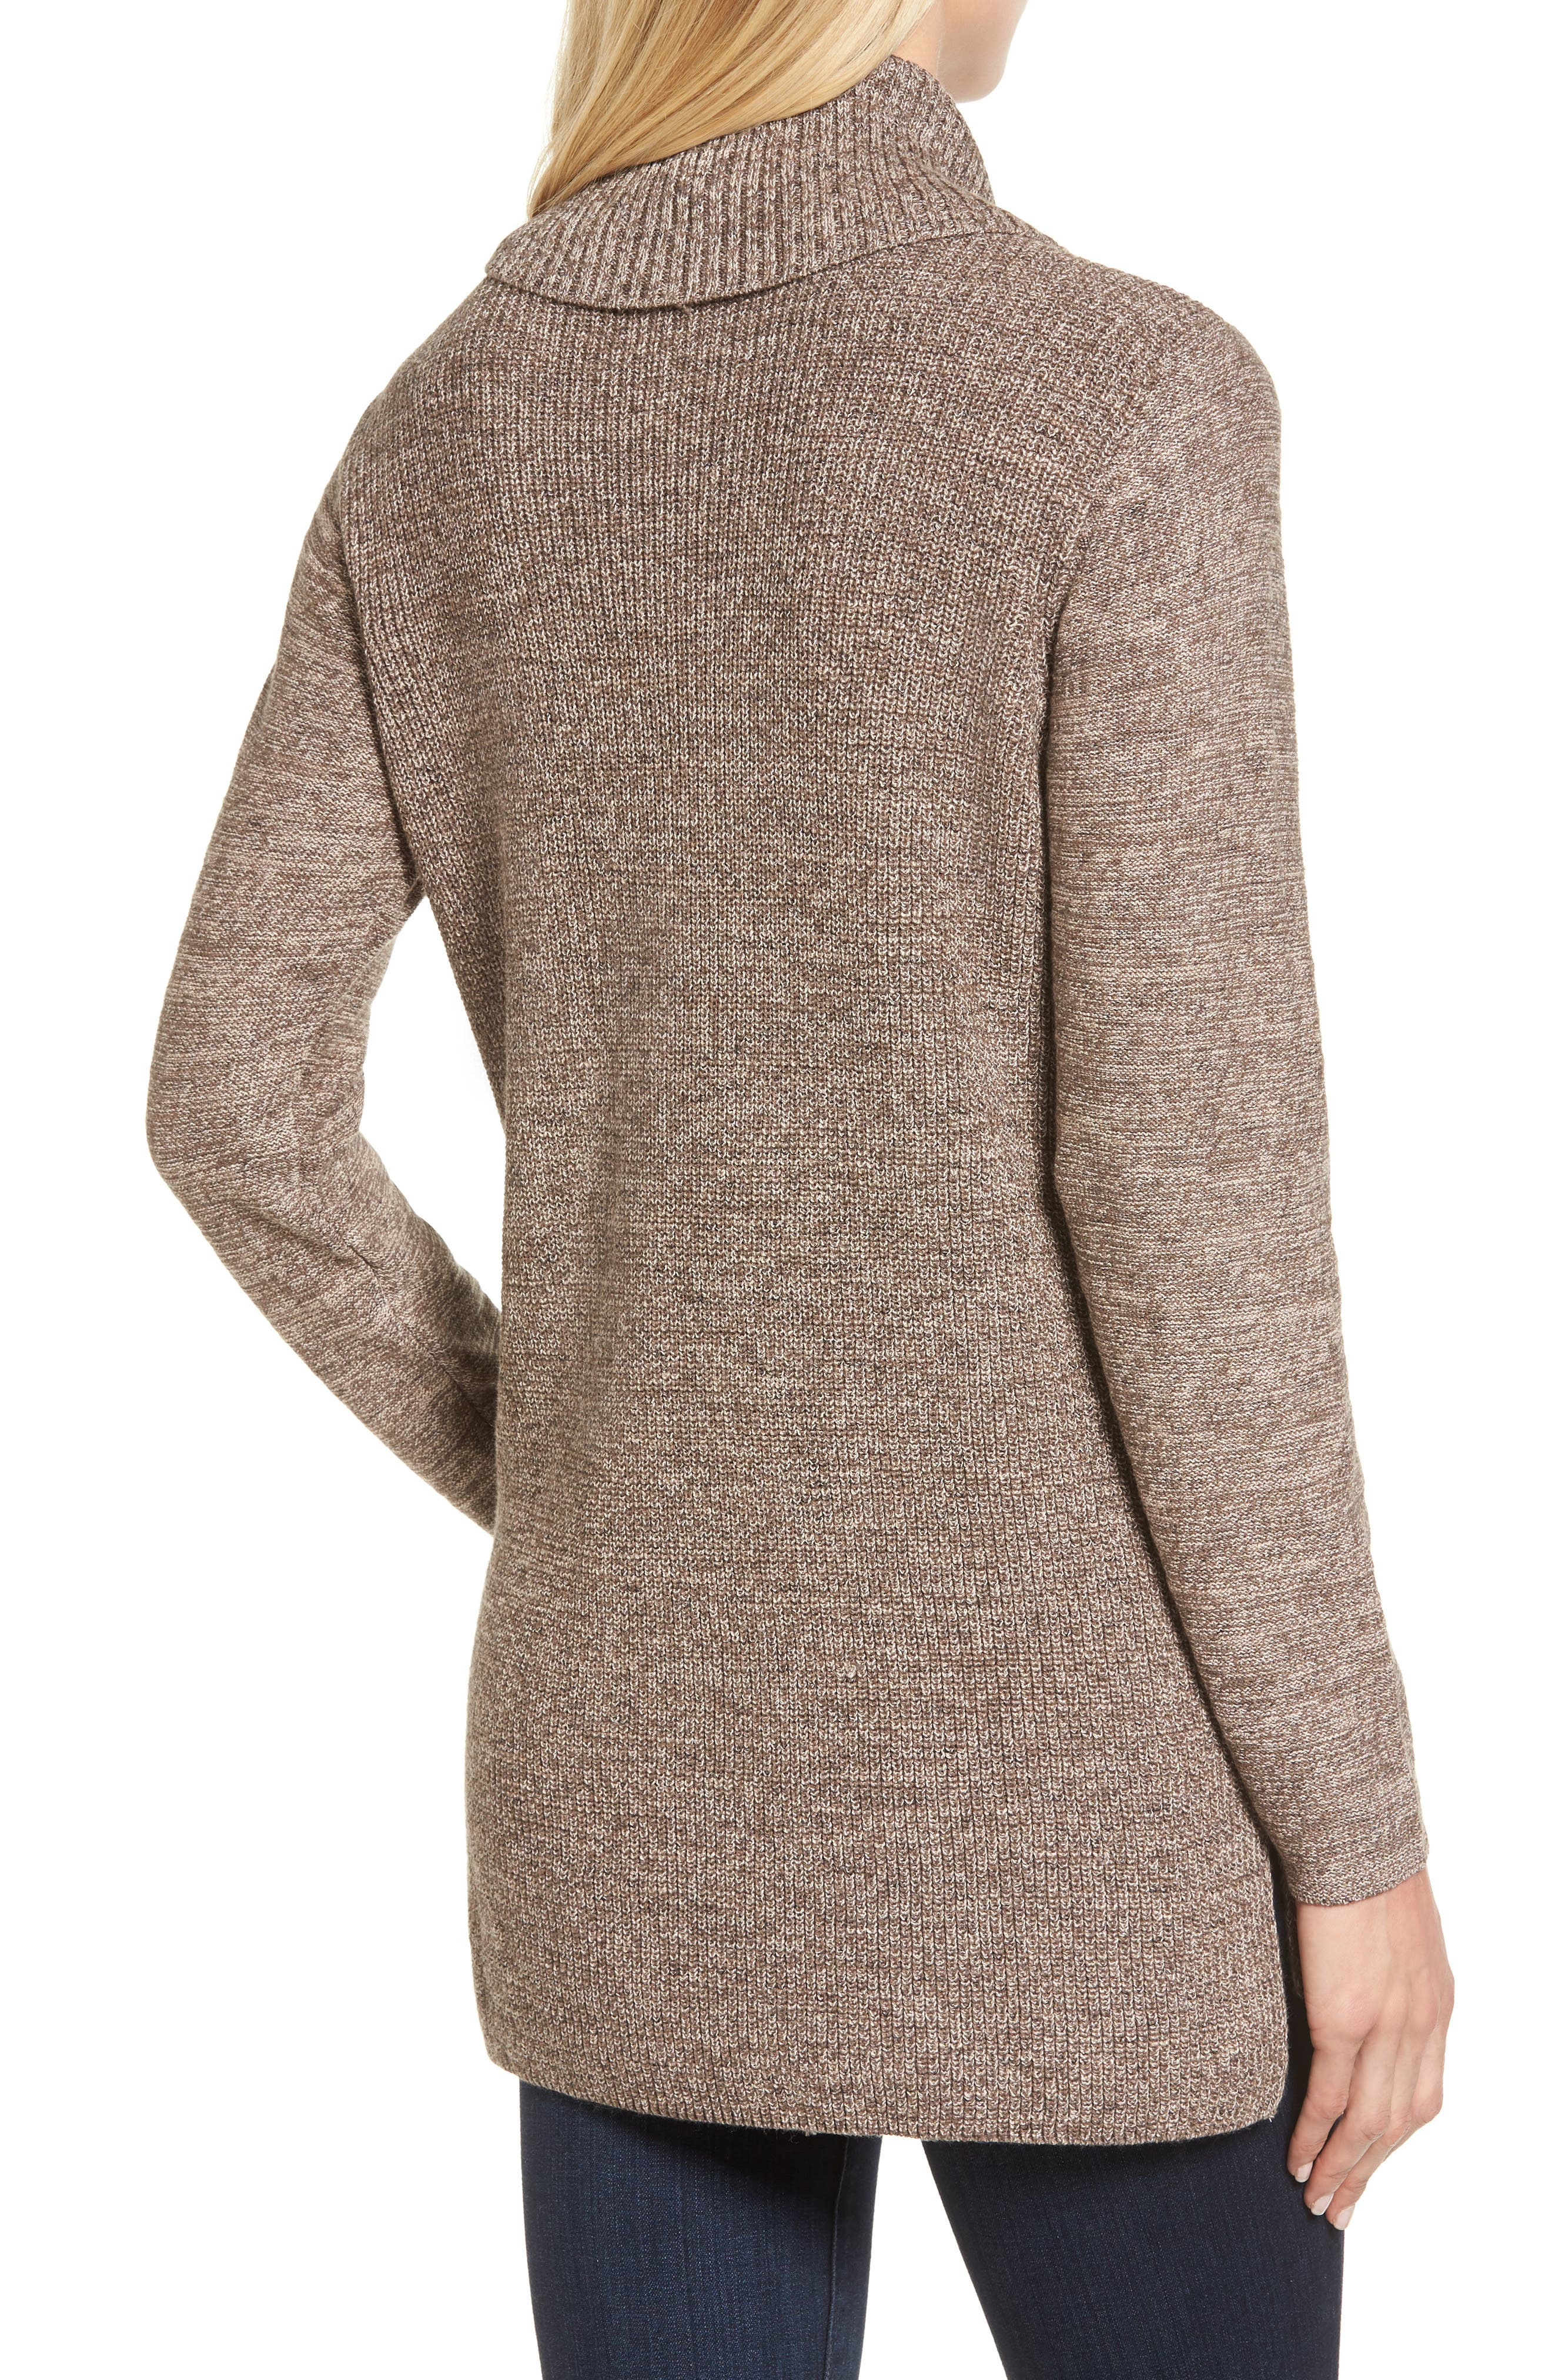 North Star Turtleneck Tunic,                             Alternate thumbnail 2, color,                             Kona